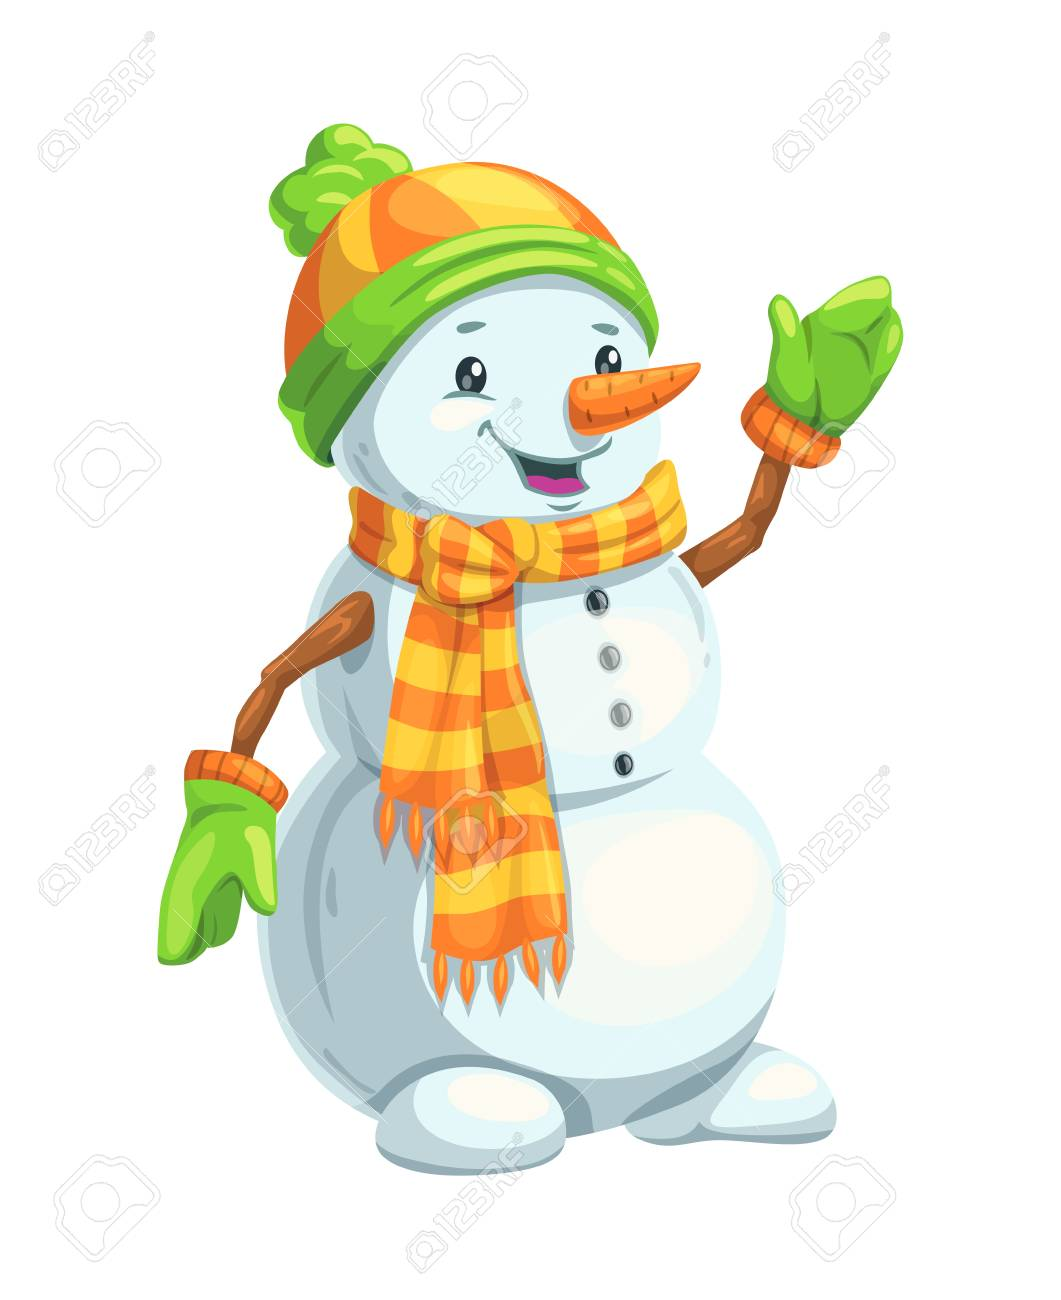 Christmas Snowman With Scarf Hat And Mittens Carrot Nose And